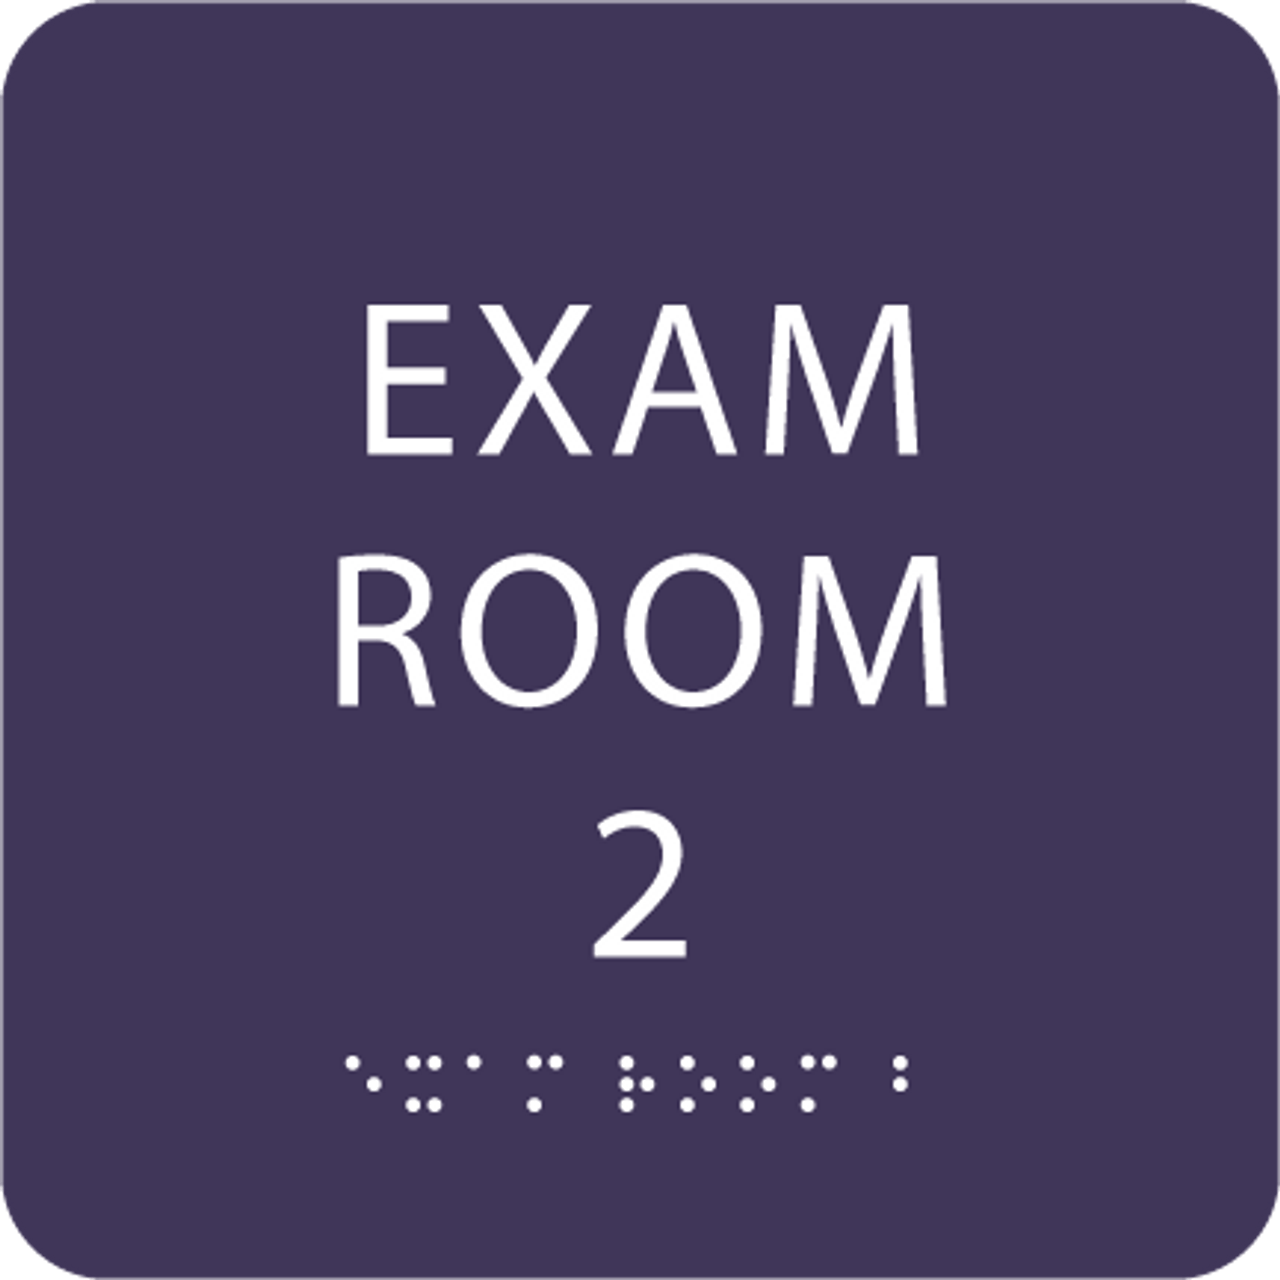 Purple ADA Exam Room 2 Sign with Braille